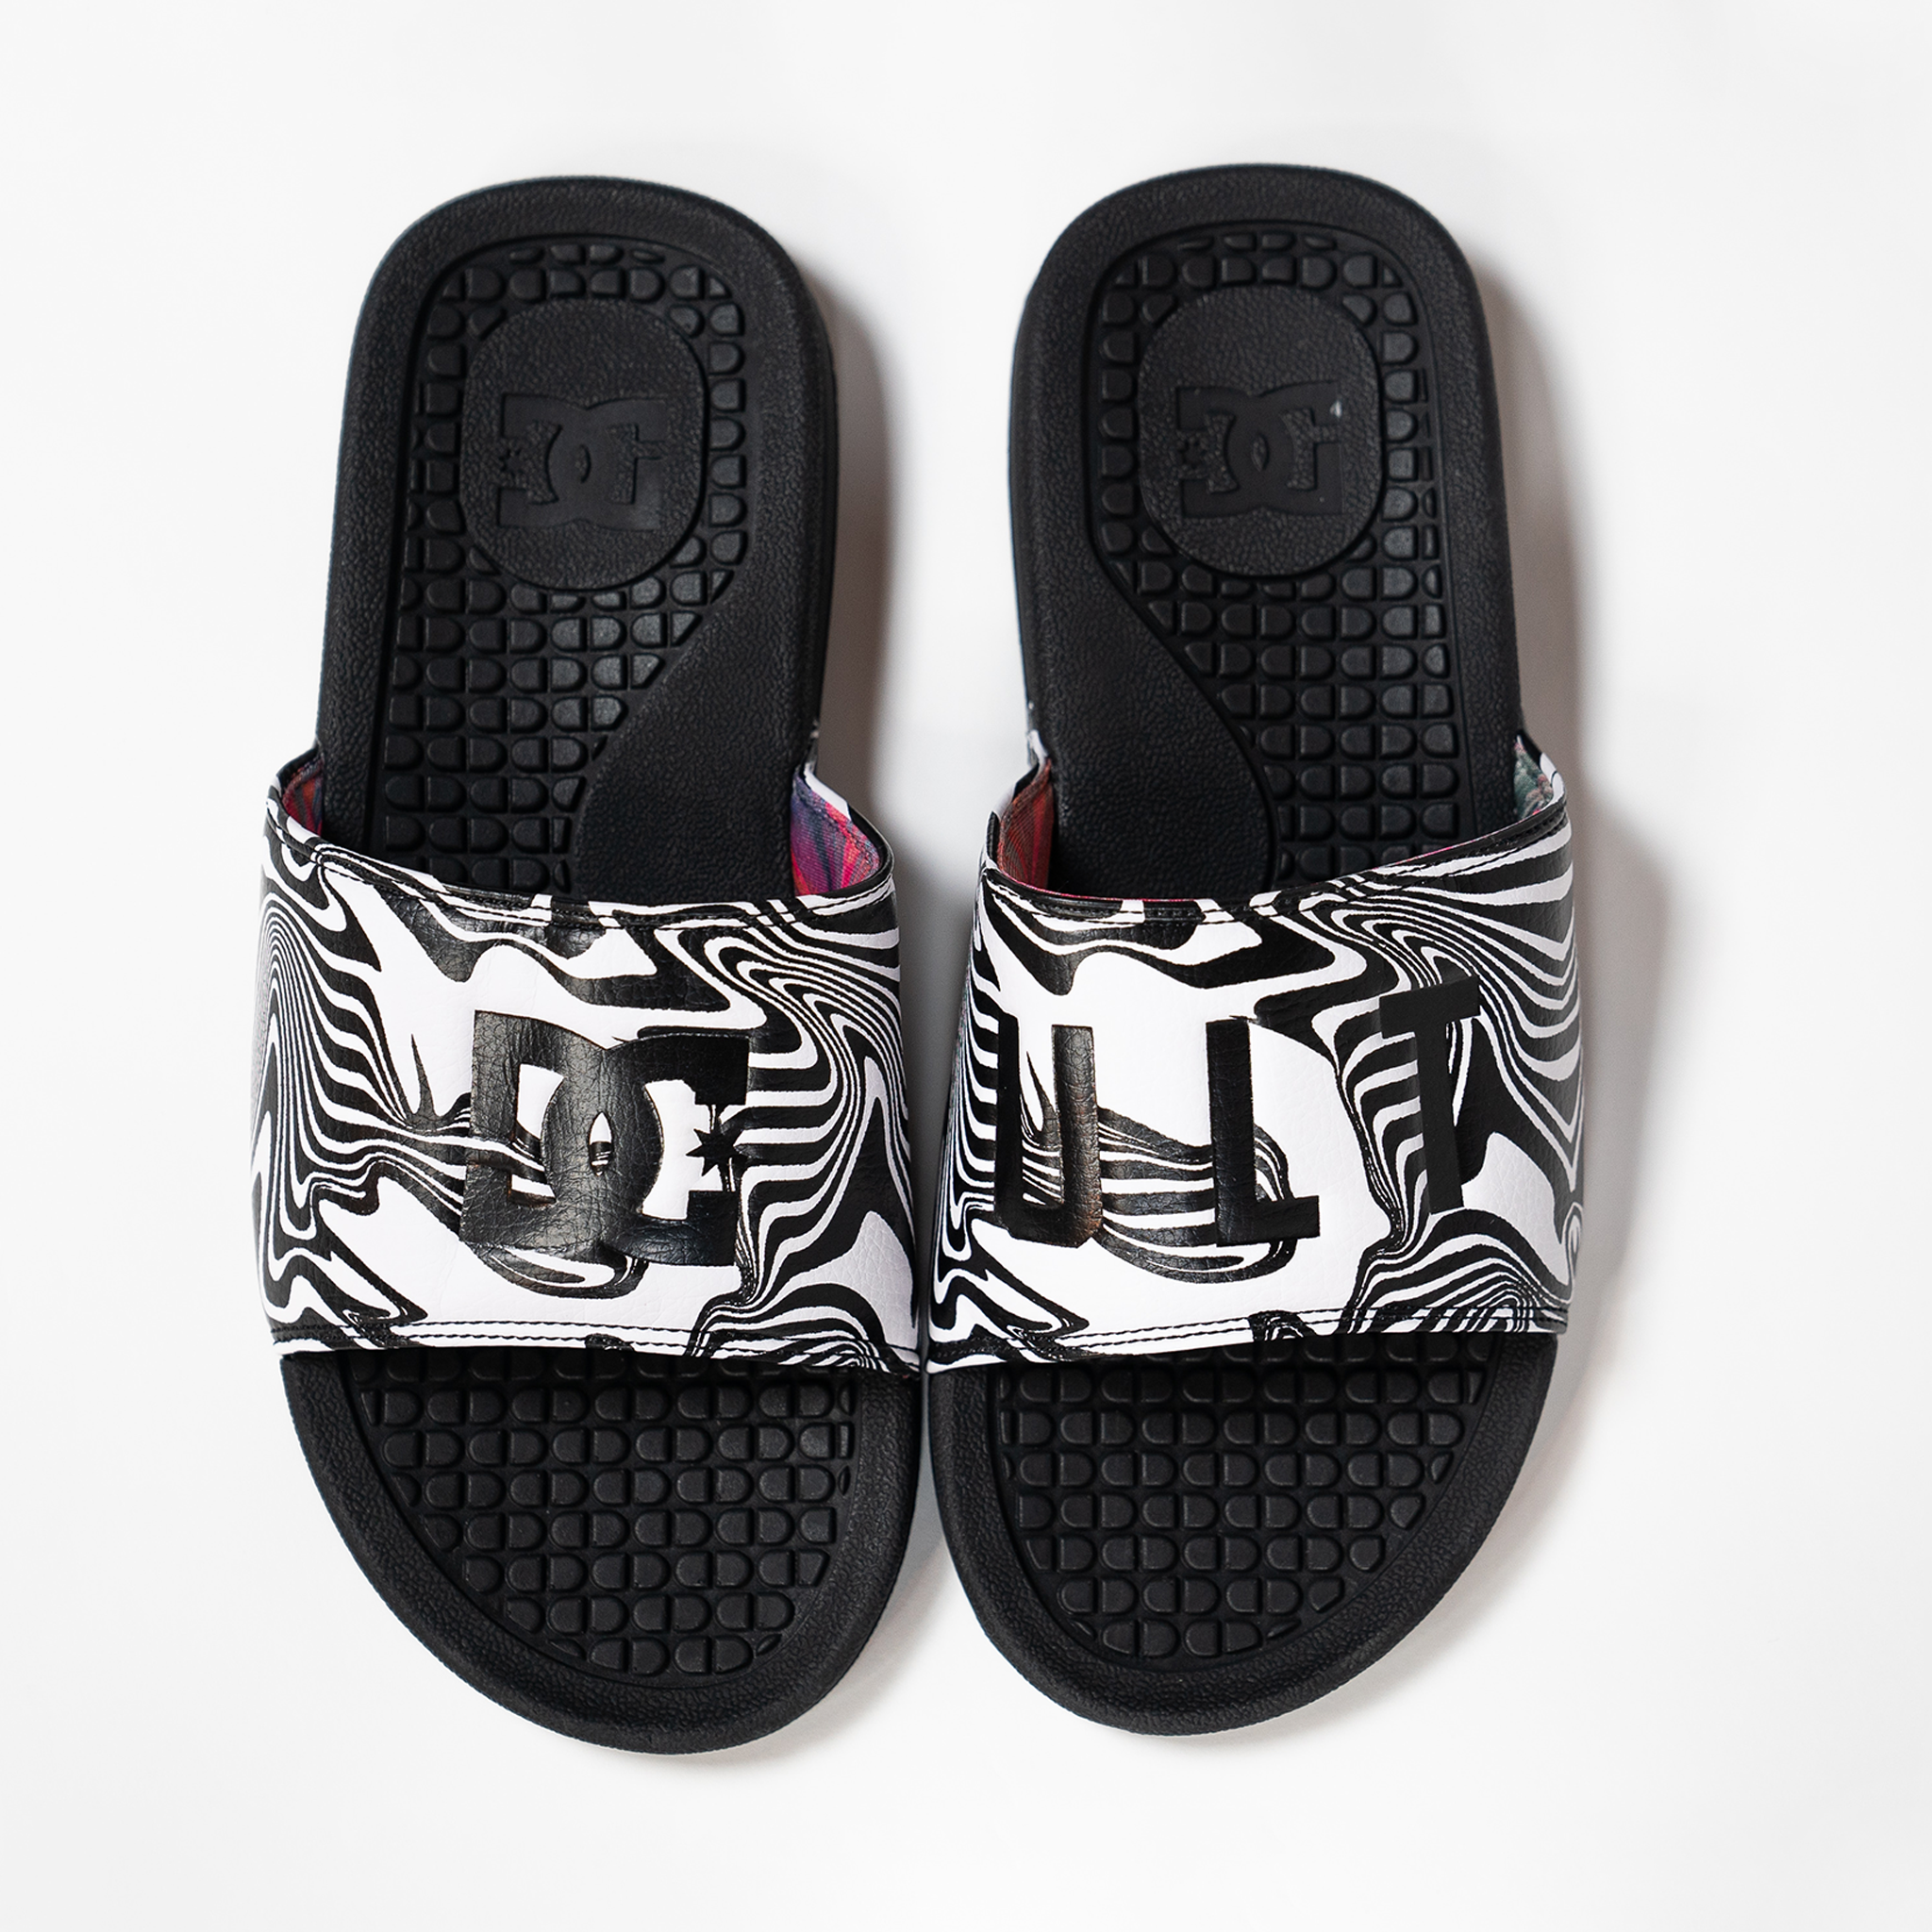 A pair of slide style sandals on white background. Black rubber soled with the strap being black and white. Strap features a black and white swirl design with the DC Shoes logo on the right shoe and ULT on the left shoe.